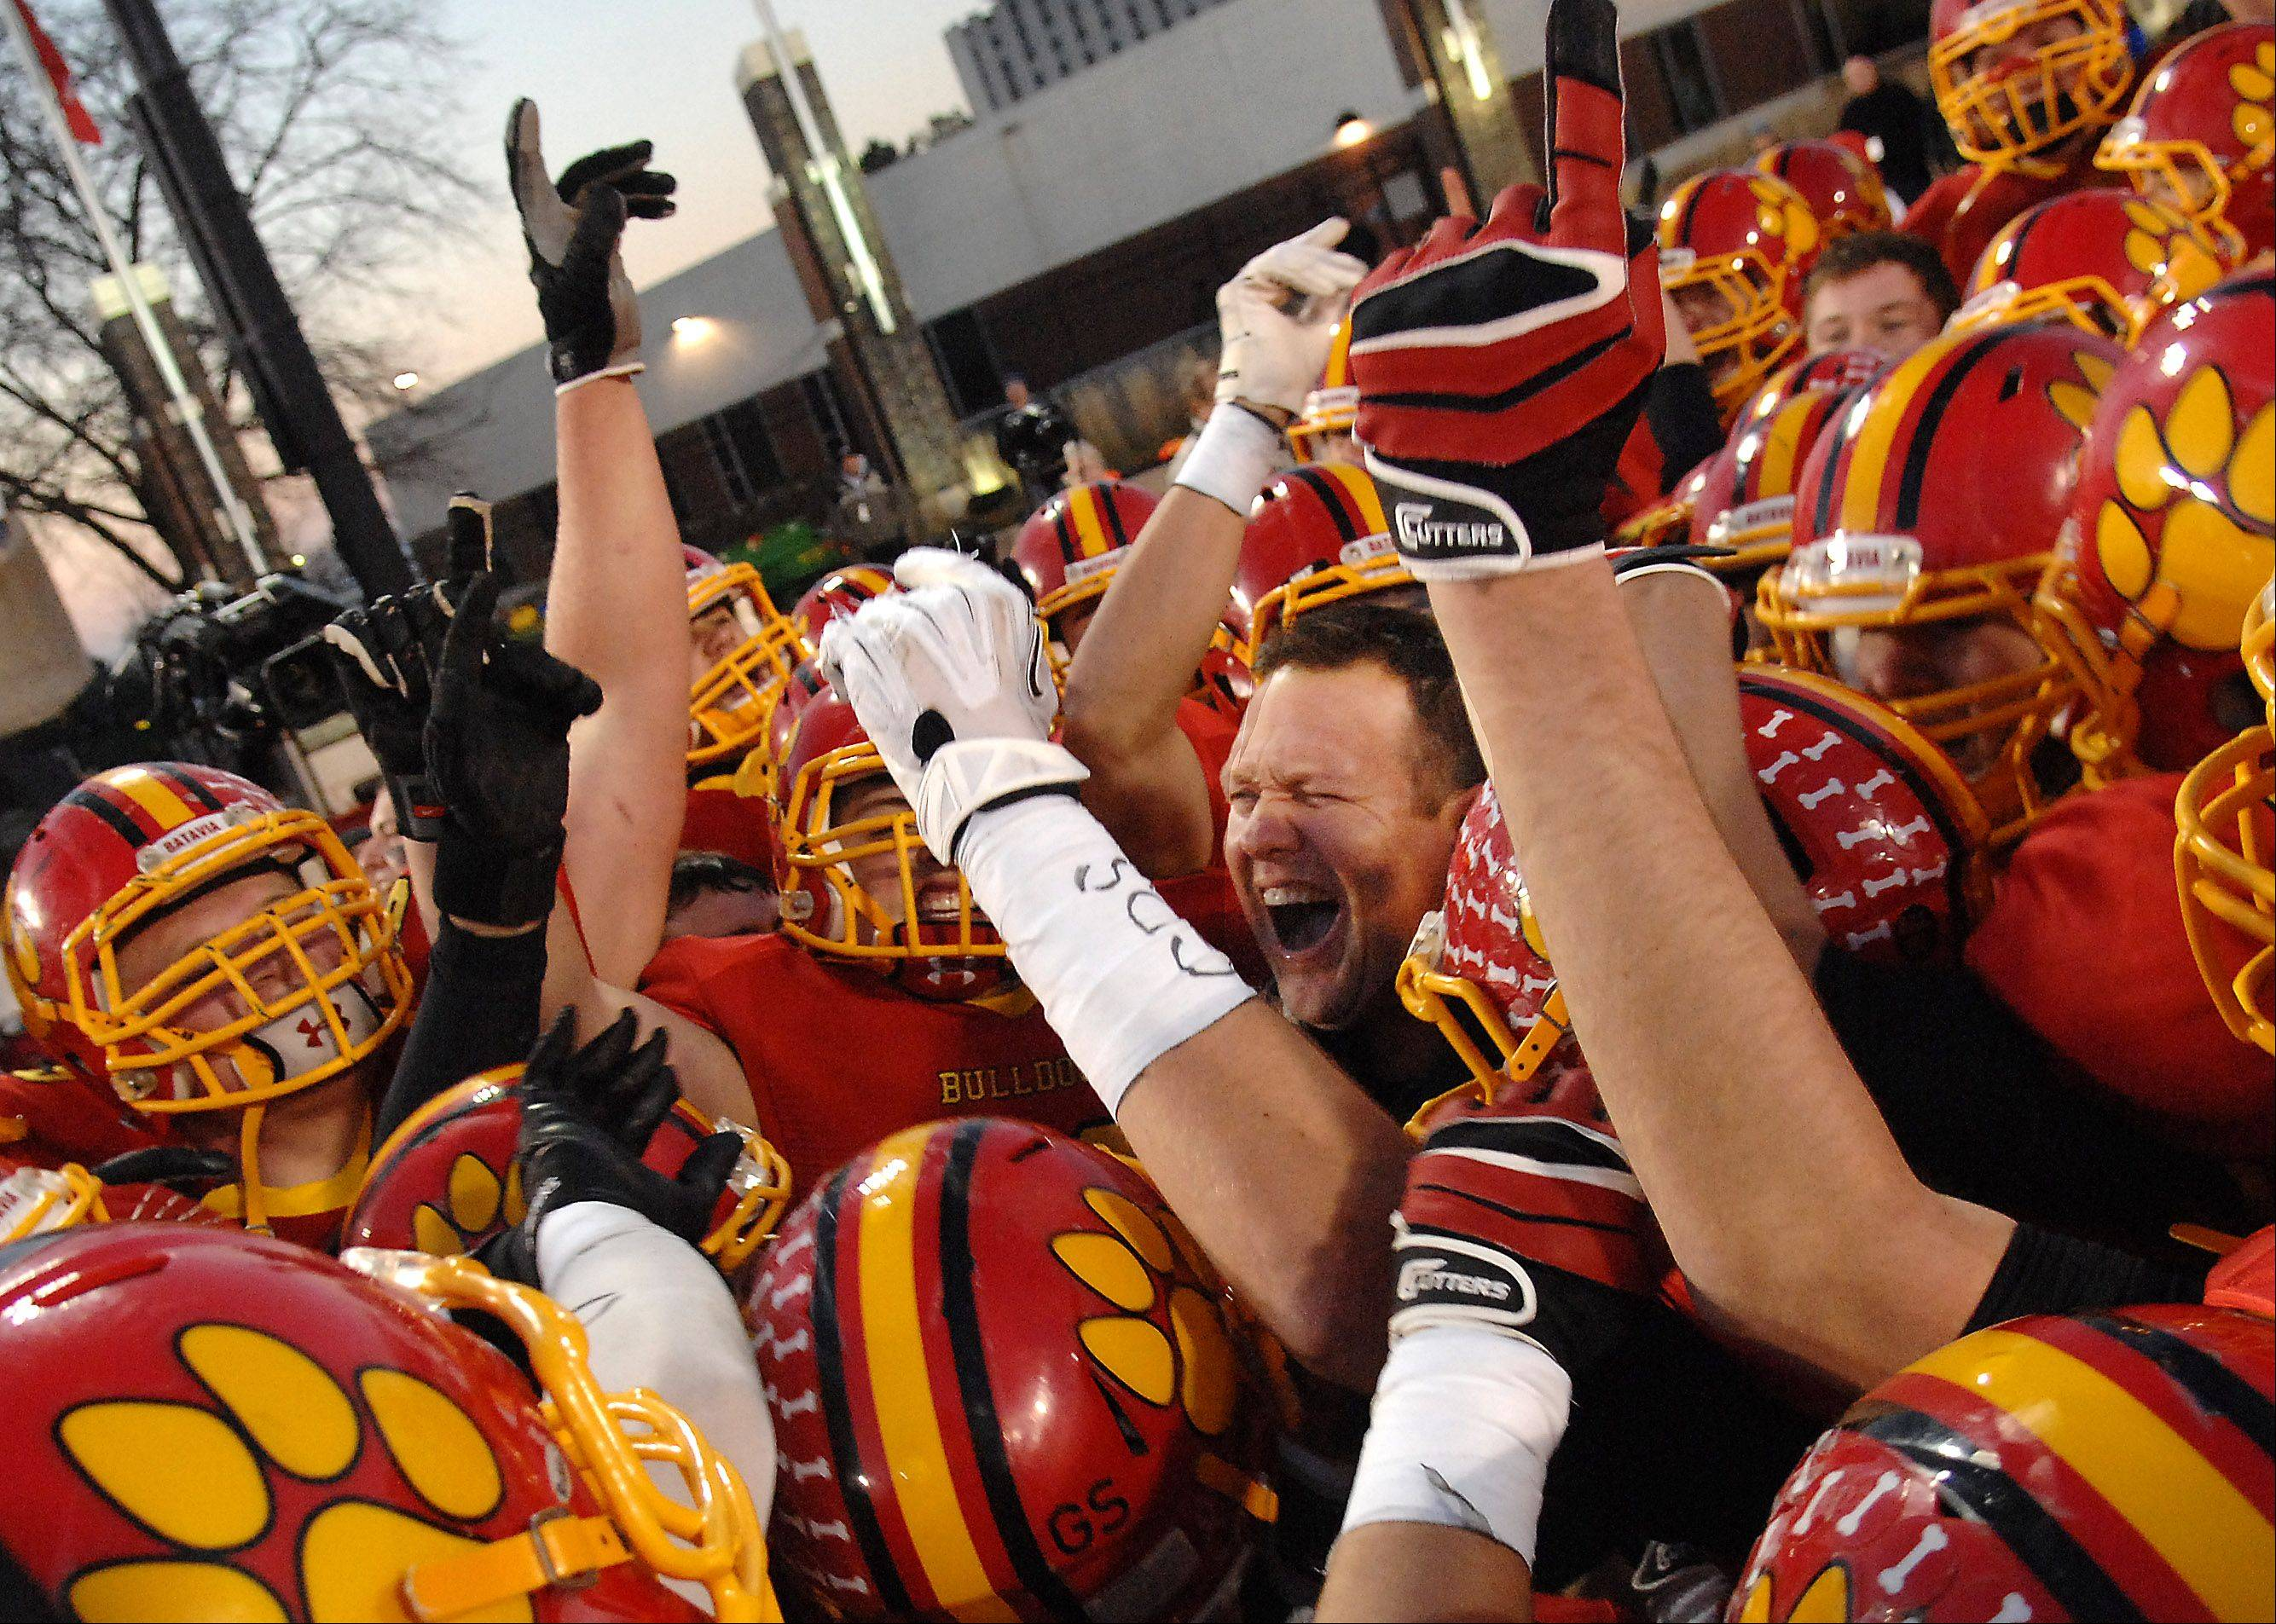 Batavia�s head coach Dennis Piron is in the middle of the celebratory scrum after Saturday�s 6A championship game in DeKalb.